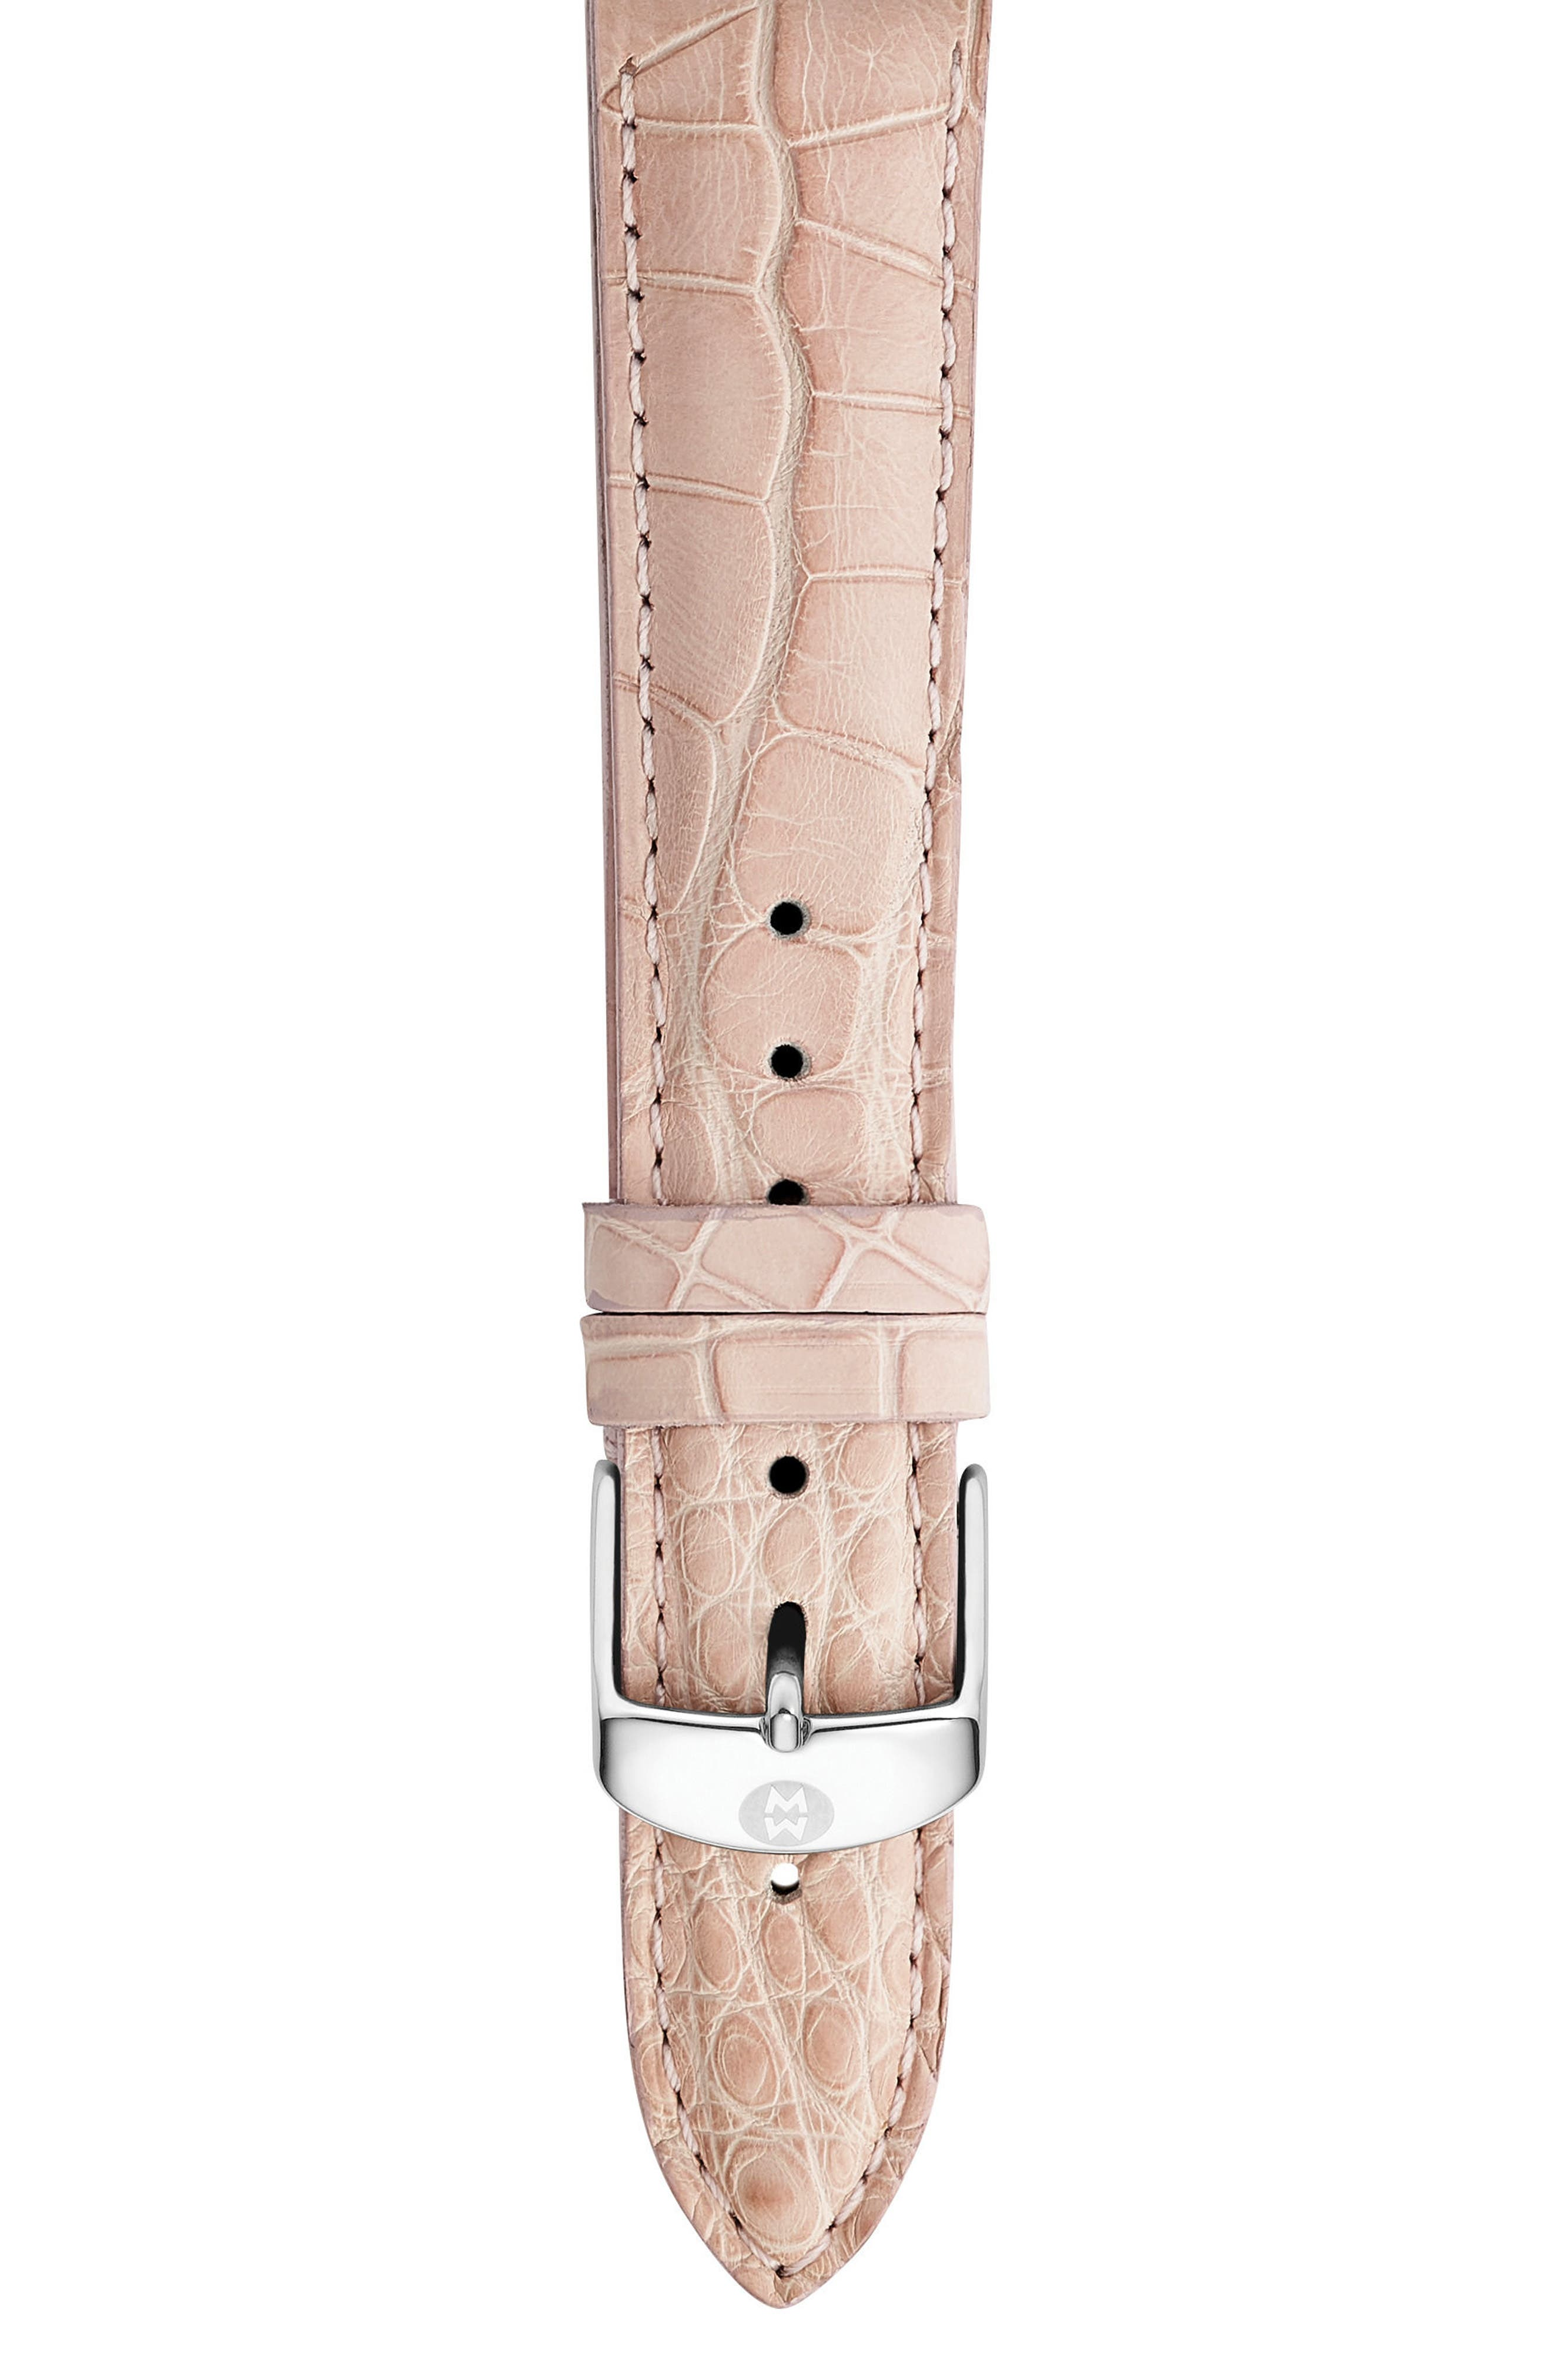 18mm Alligator Watch Strap,                         Main,                         color, Blush Pink